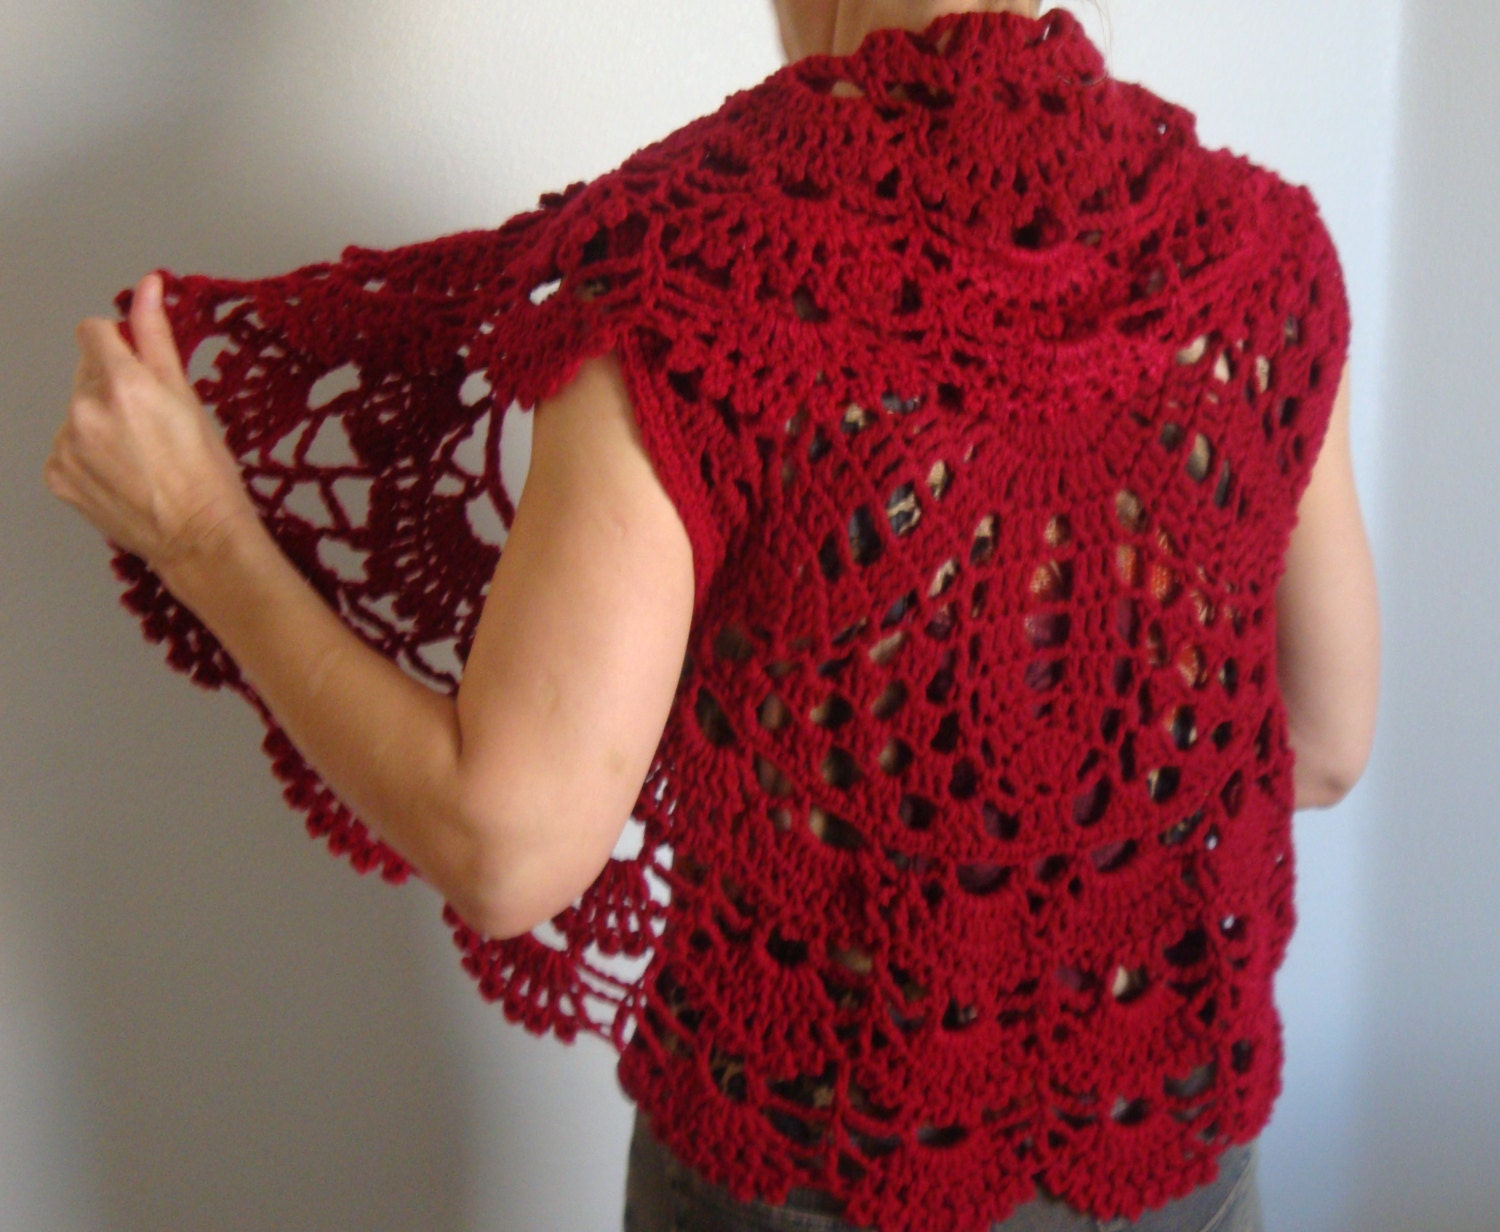 Crochet Circle Vest Pattern, Easy Crochet Pattern, Digital File